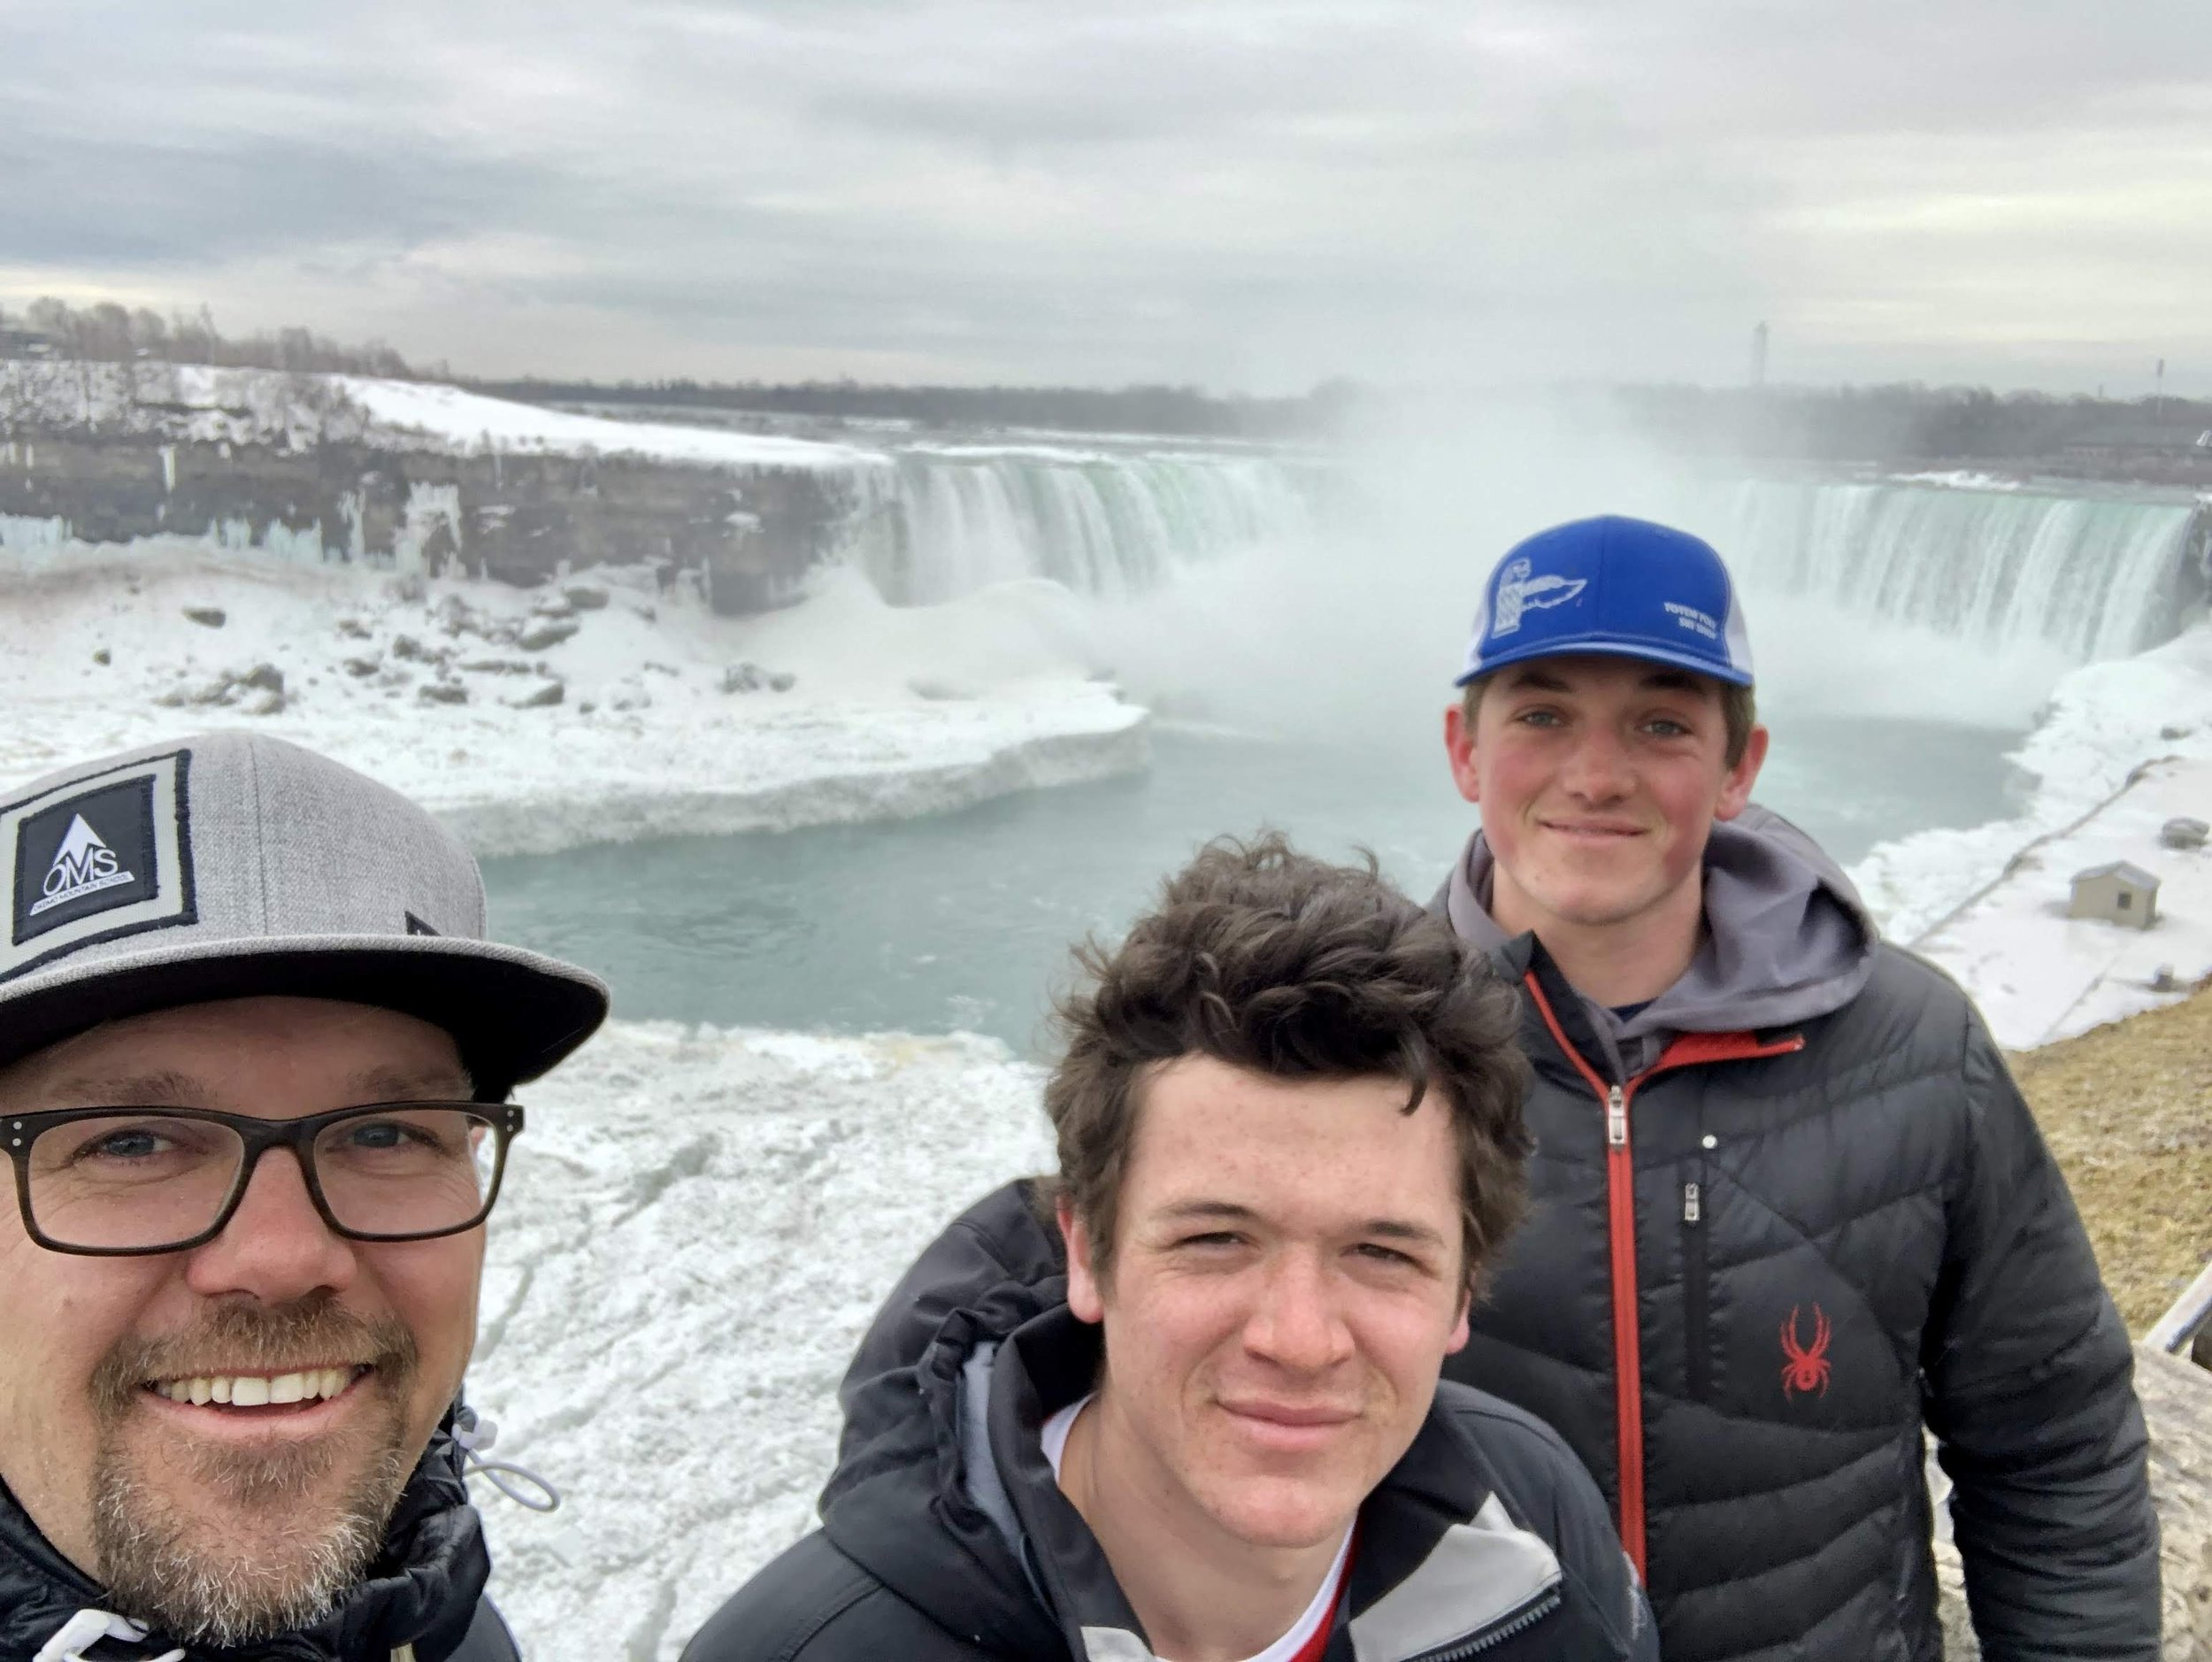 A quick stop at Niagra Falls while competing in Canada!